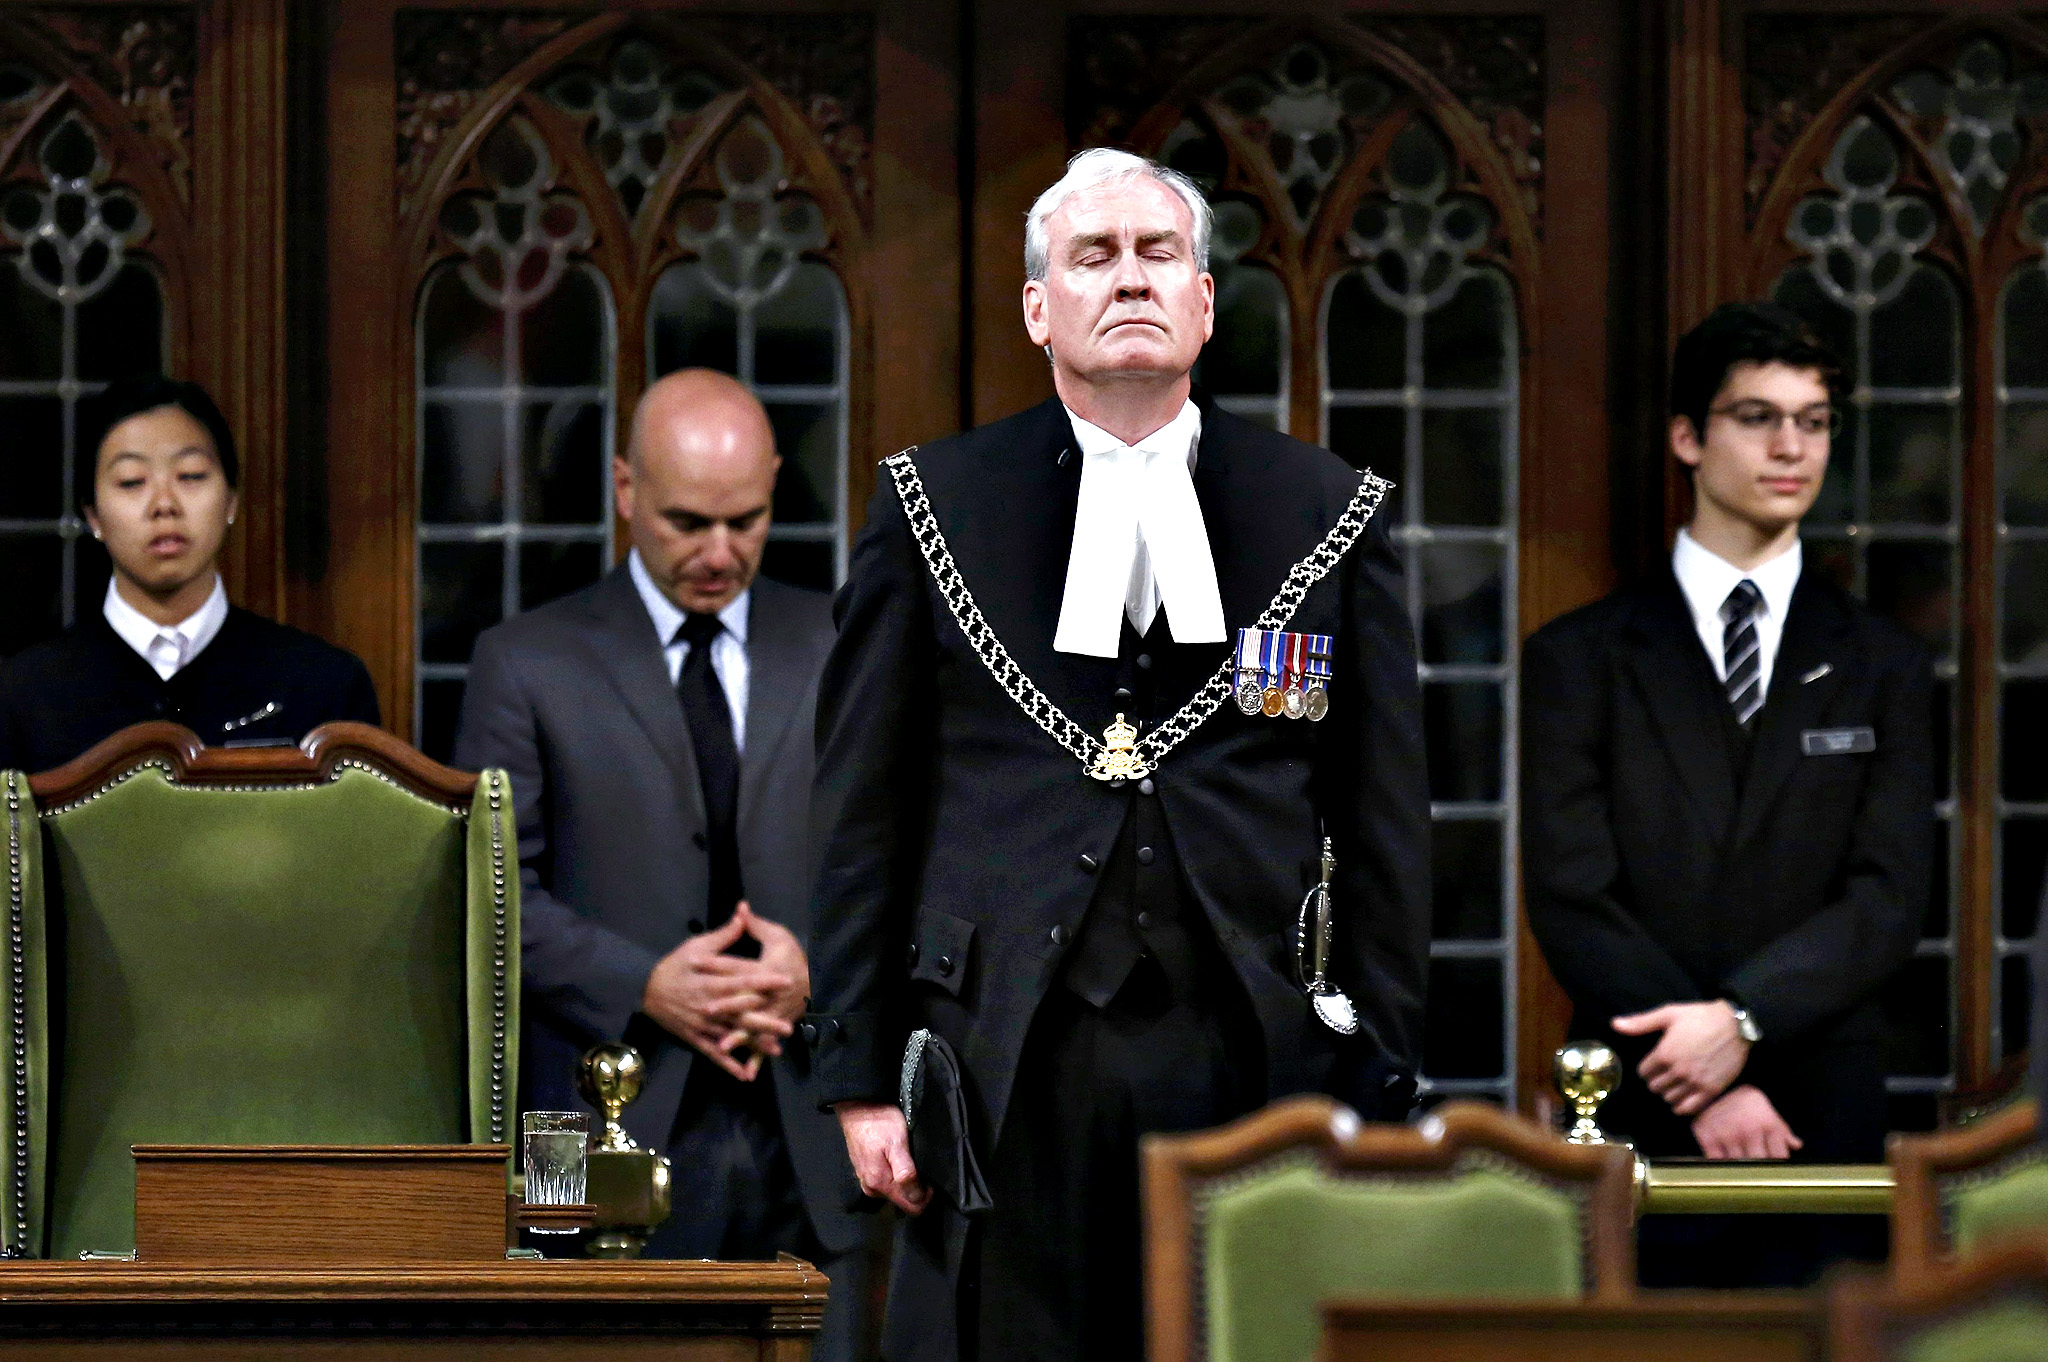 Canada's Sergeant-at-Arms Kevin Vickers is applauded in the House of Commons in Ottawa October 23, 2014. Vickers shot a gunman during an attack on the Parliament Buildings on October 22.